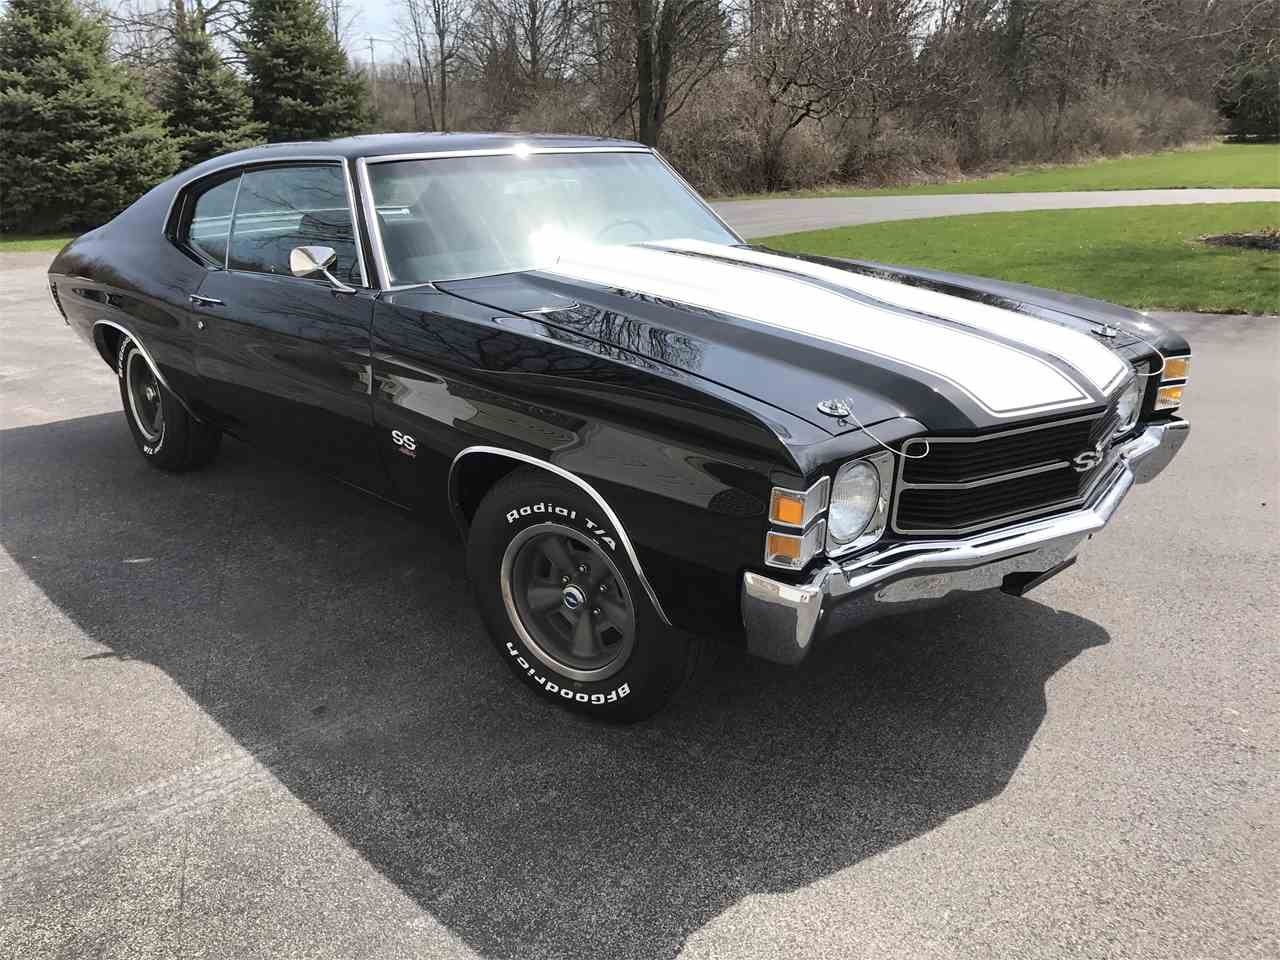 All Chevy 1971 chevrolet chevelle ss : 1971 Chevrolet Chevelle SS for Sale | ClassicCars.com | CC-988683